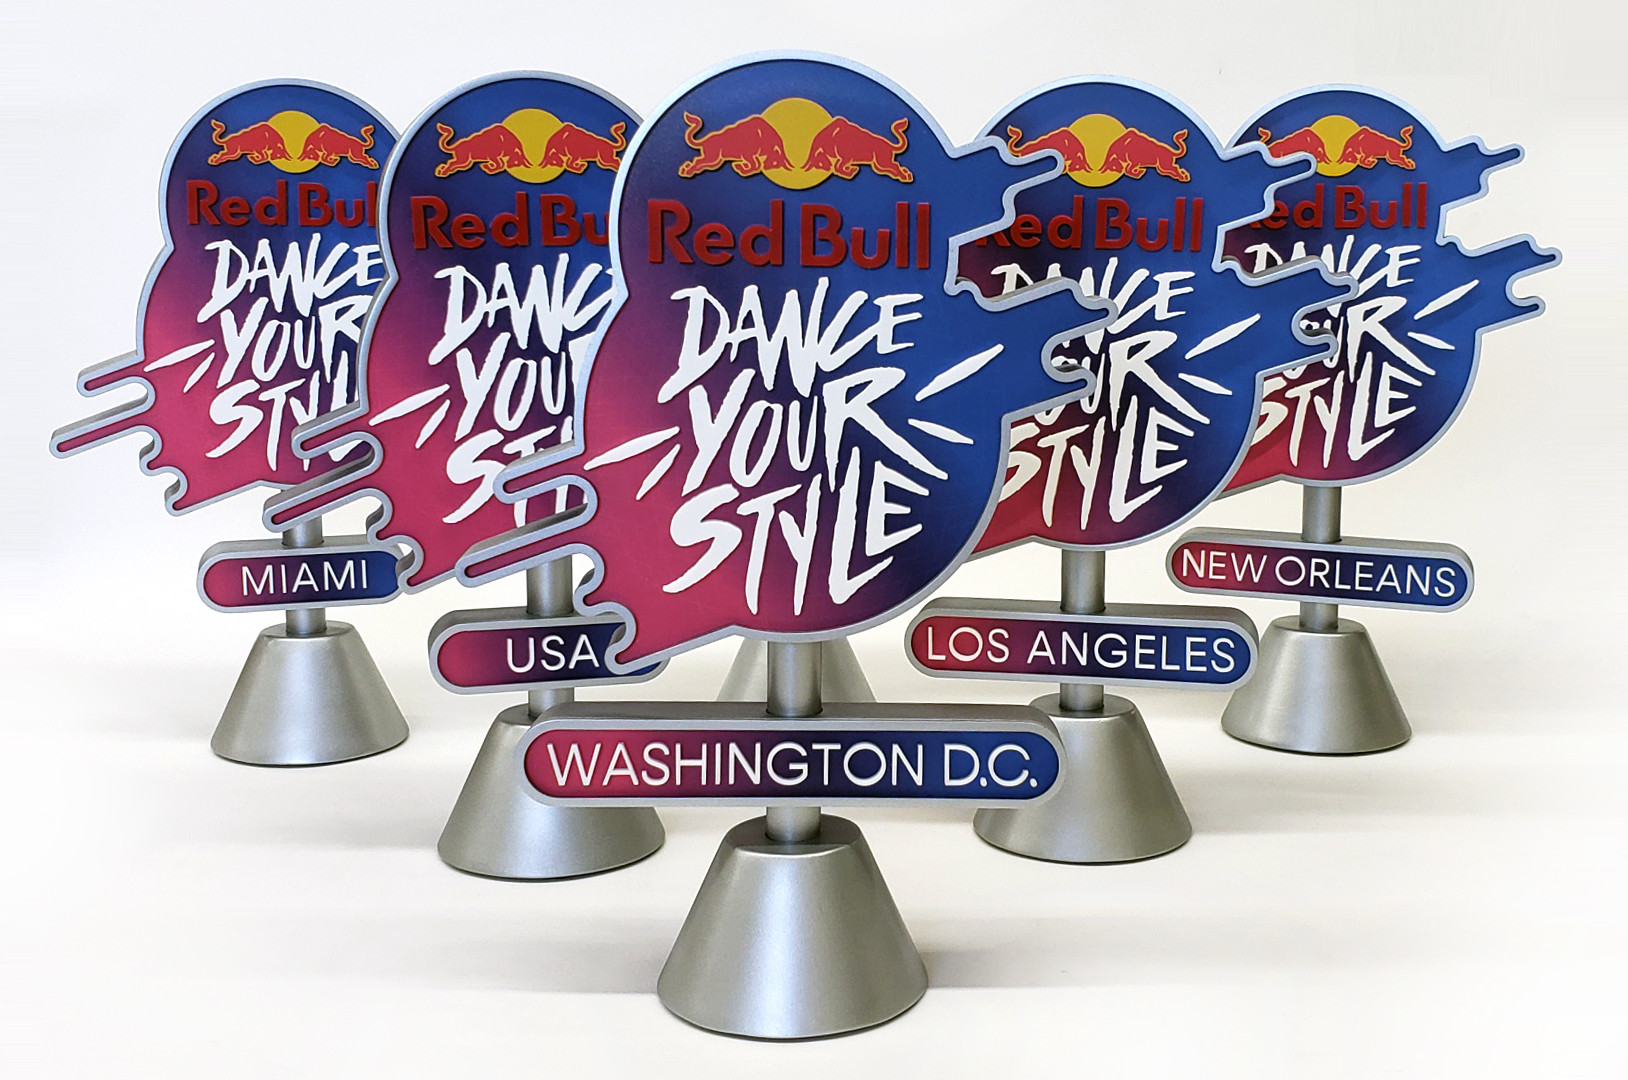 Red Bull Dance Awards